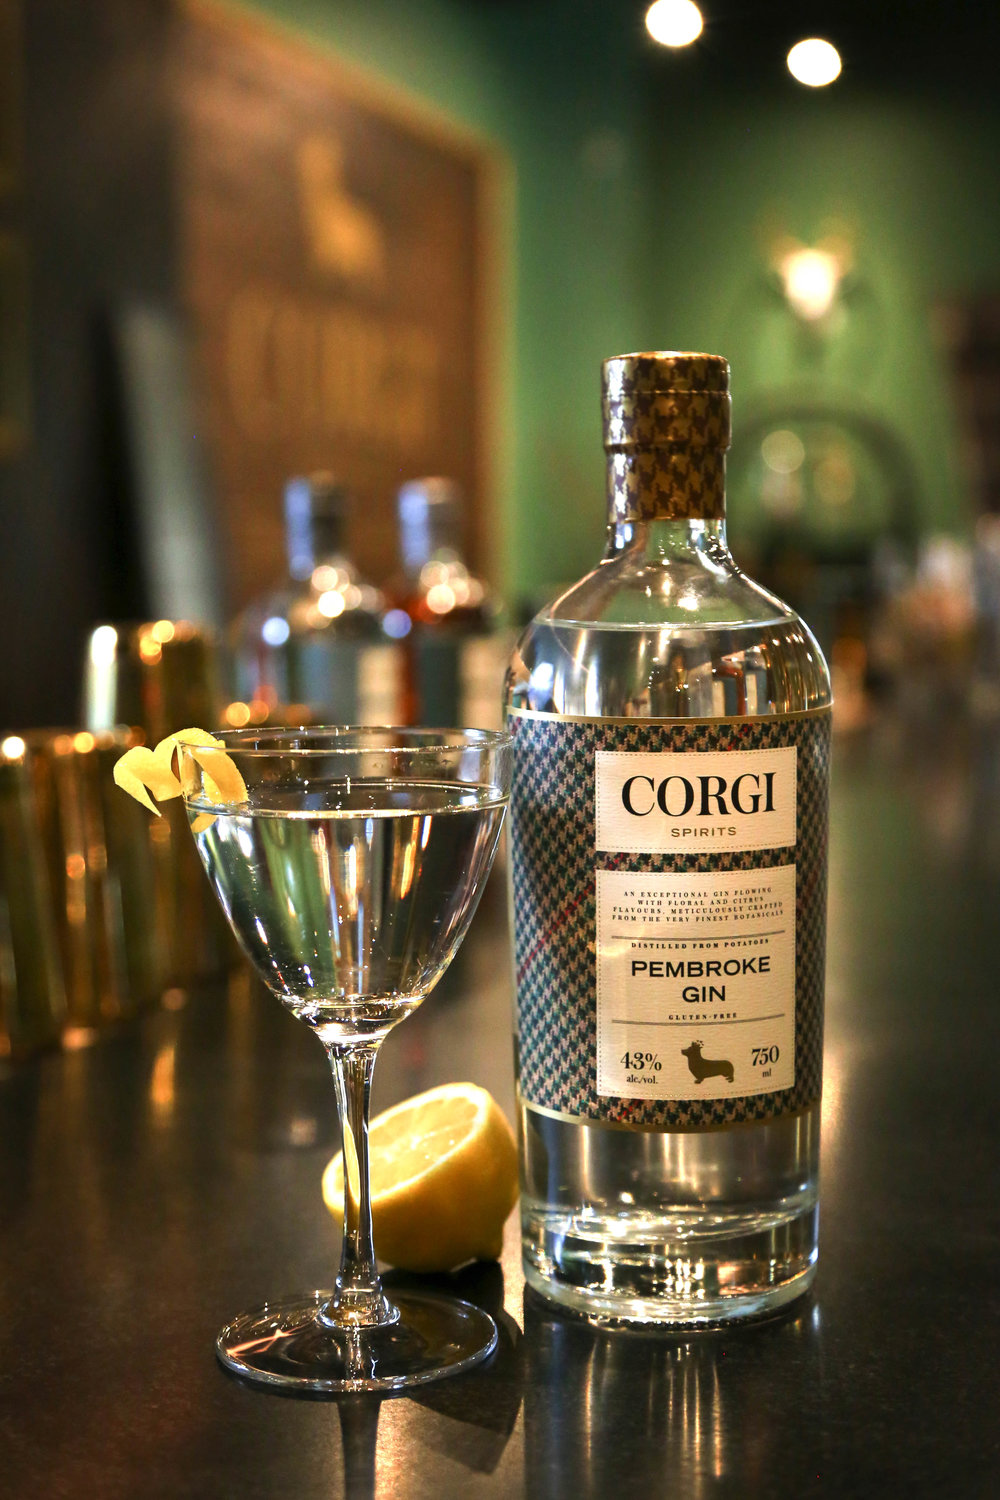 CLASSIC MARTINI   2.5 oz Corgi Spirits Pembroke Gin  0.5 oz dry vermouth  Lemon twist or olives for garnish    Fill a mixing glass with ice, add gin and vermouth. Stir until well chilled. Strain into a chilled cocktail glass. Add garnish.